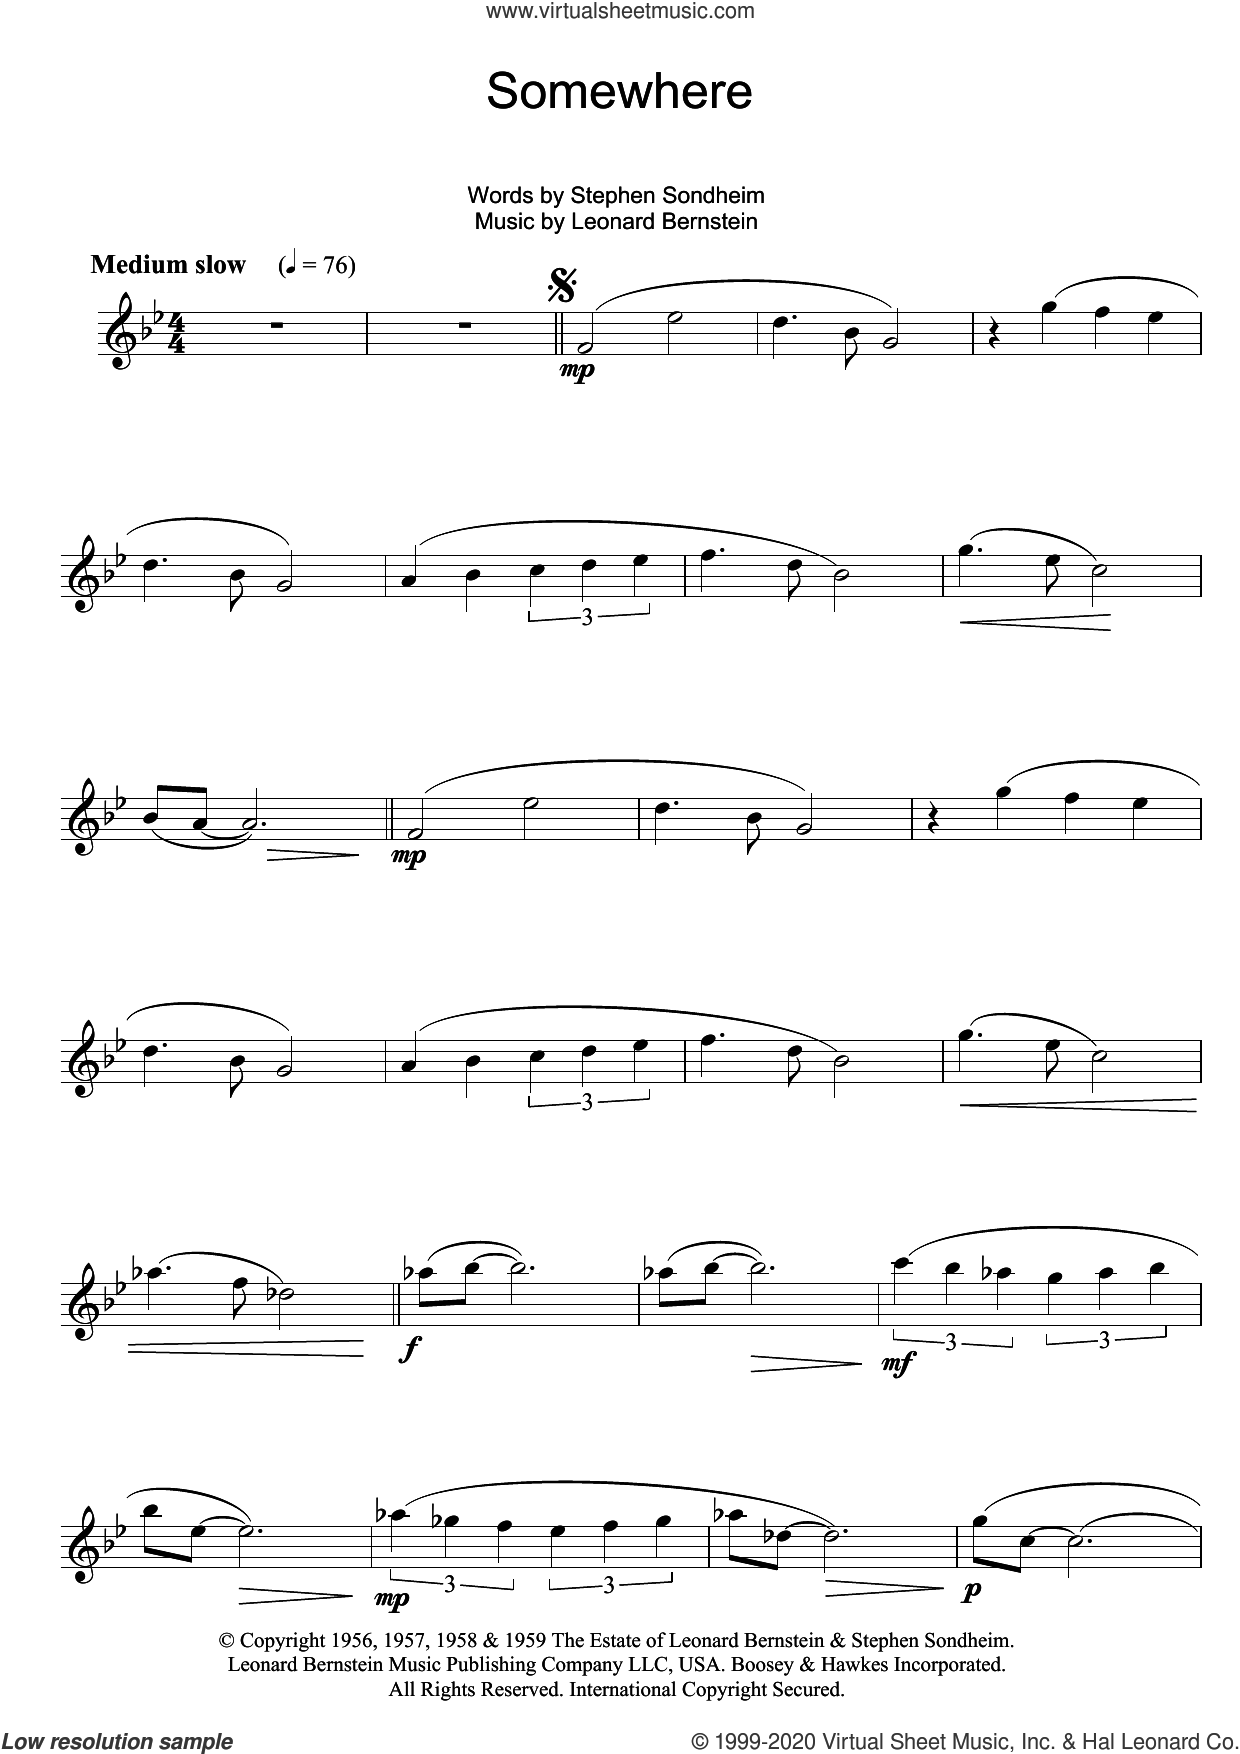 Somewhere (from West Side Story) sheet music for alto saxophone solo by Leonard Bernstein, Pet Shop Boys and Stephen Sondheim, intermediate skill level